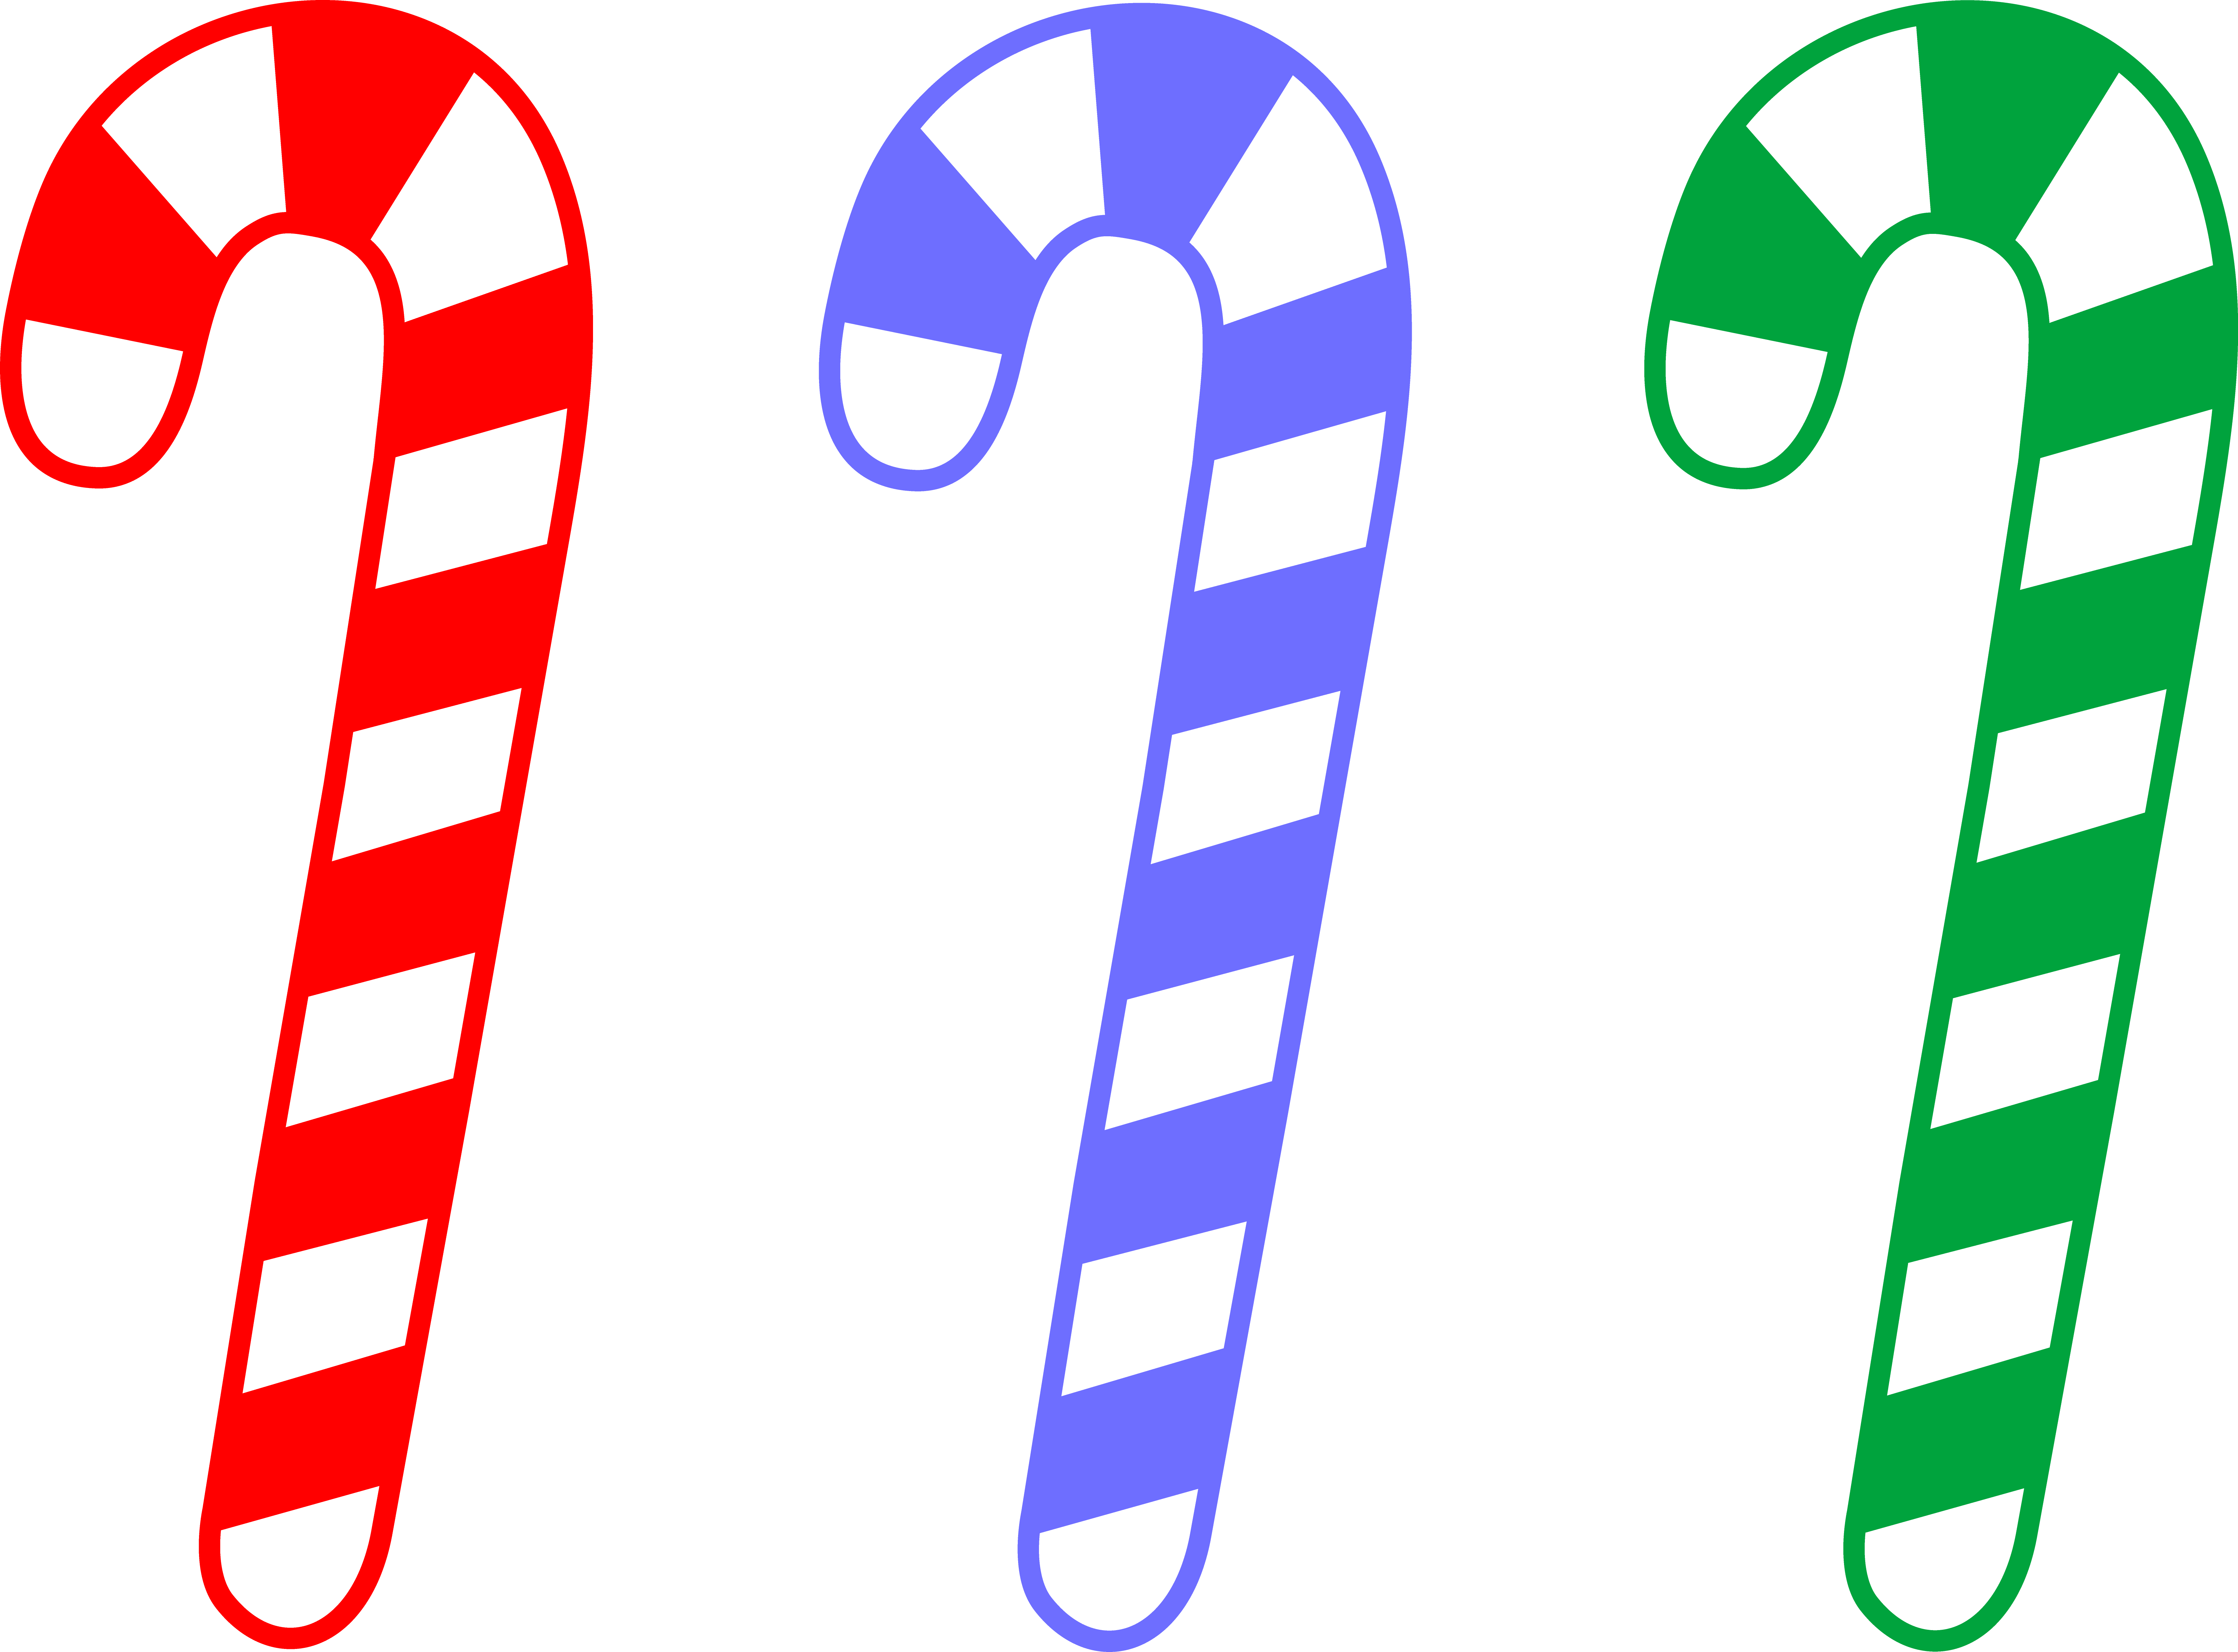 Red Blue and Green Candy Canes - Free Cl-Red Blue and Green Candy Canes - Free Clip Art-18